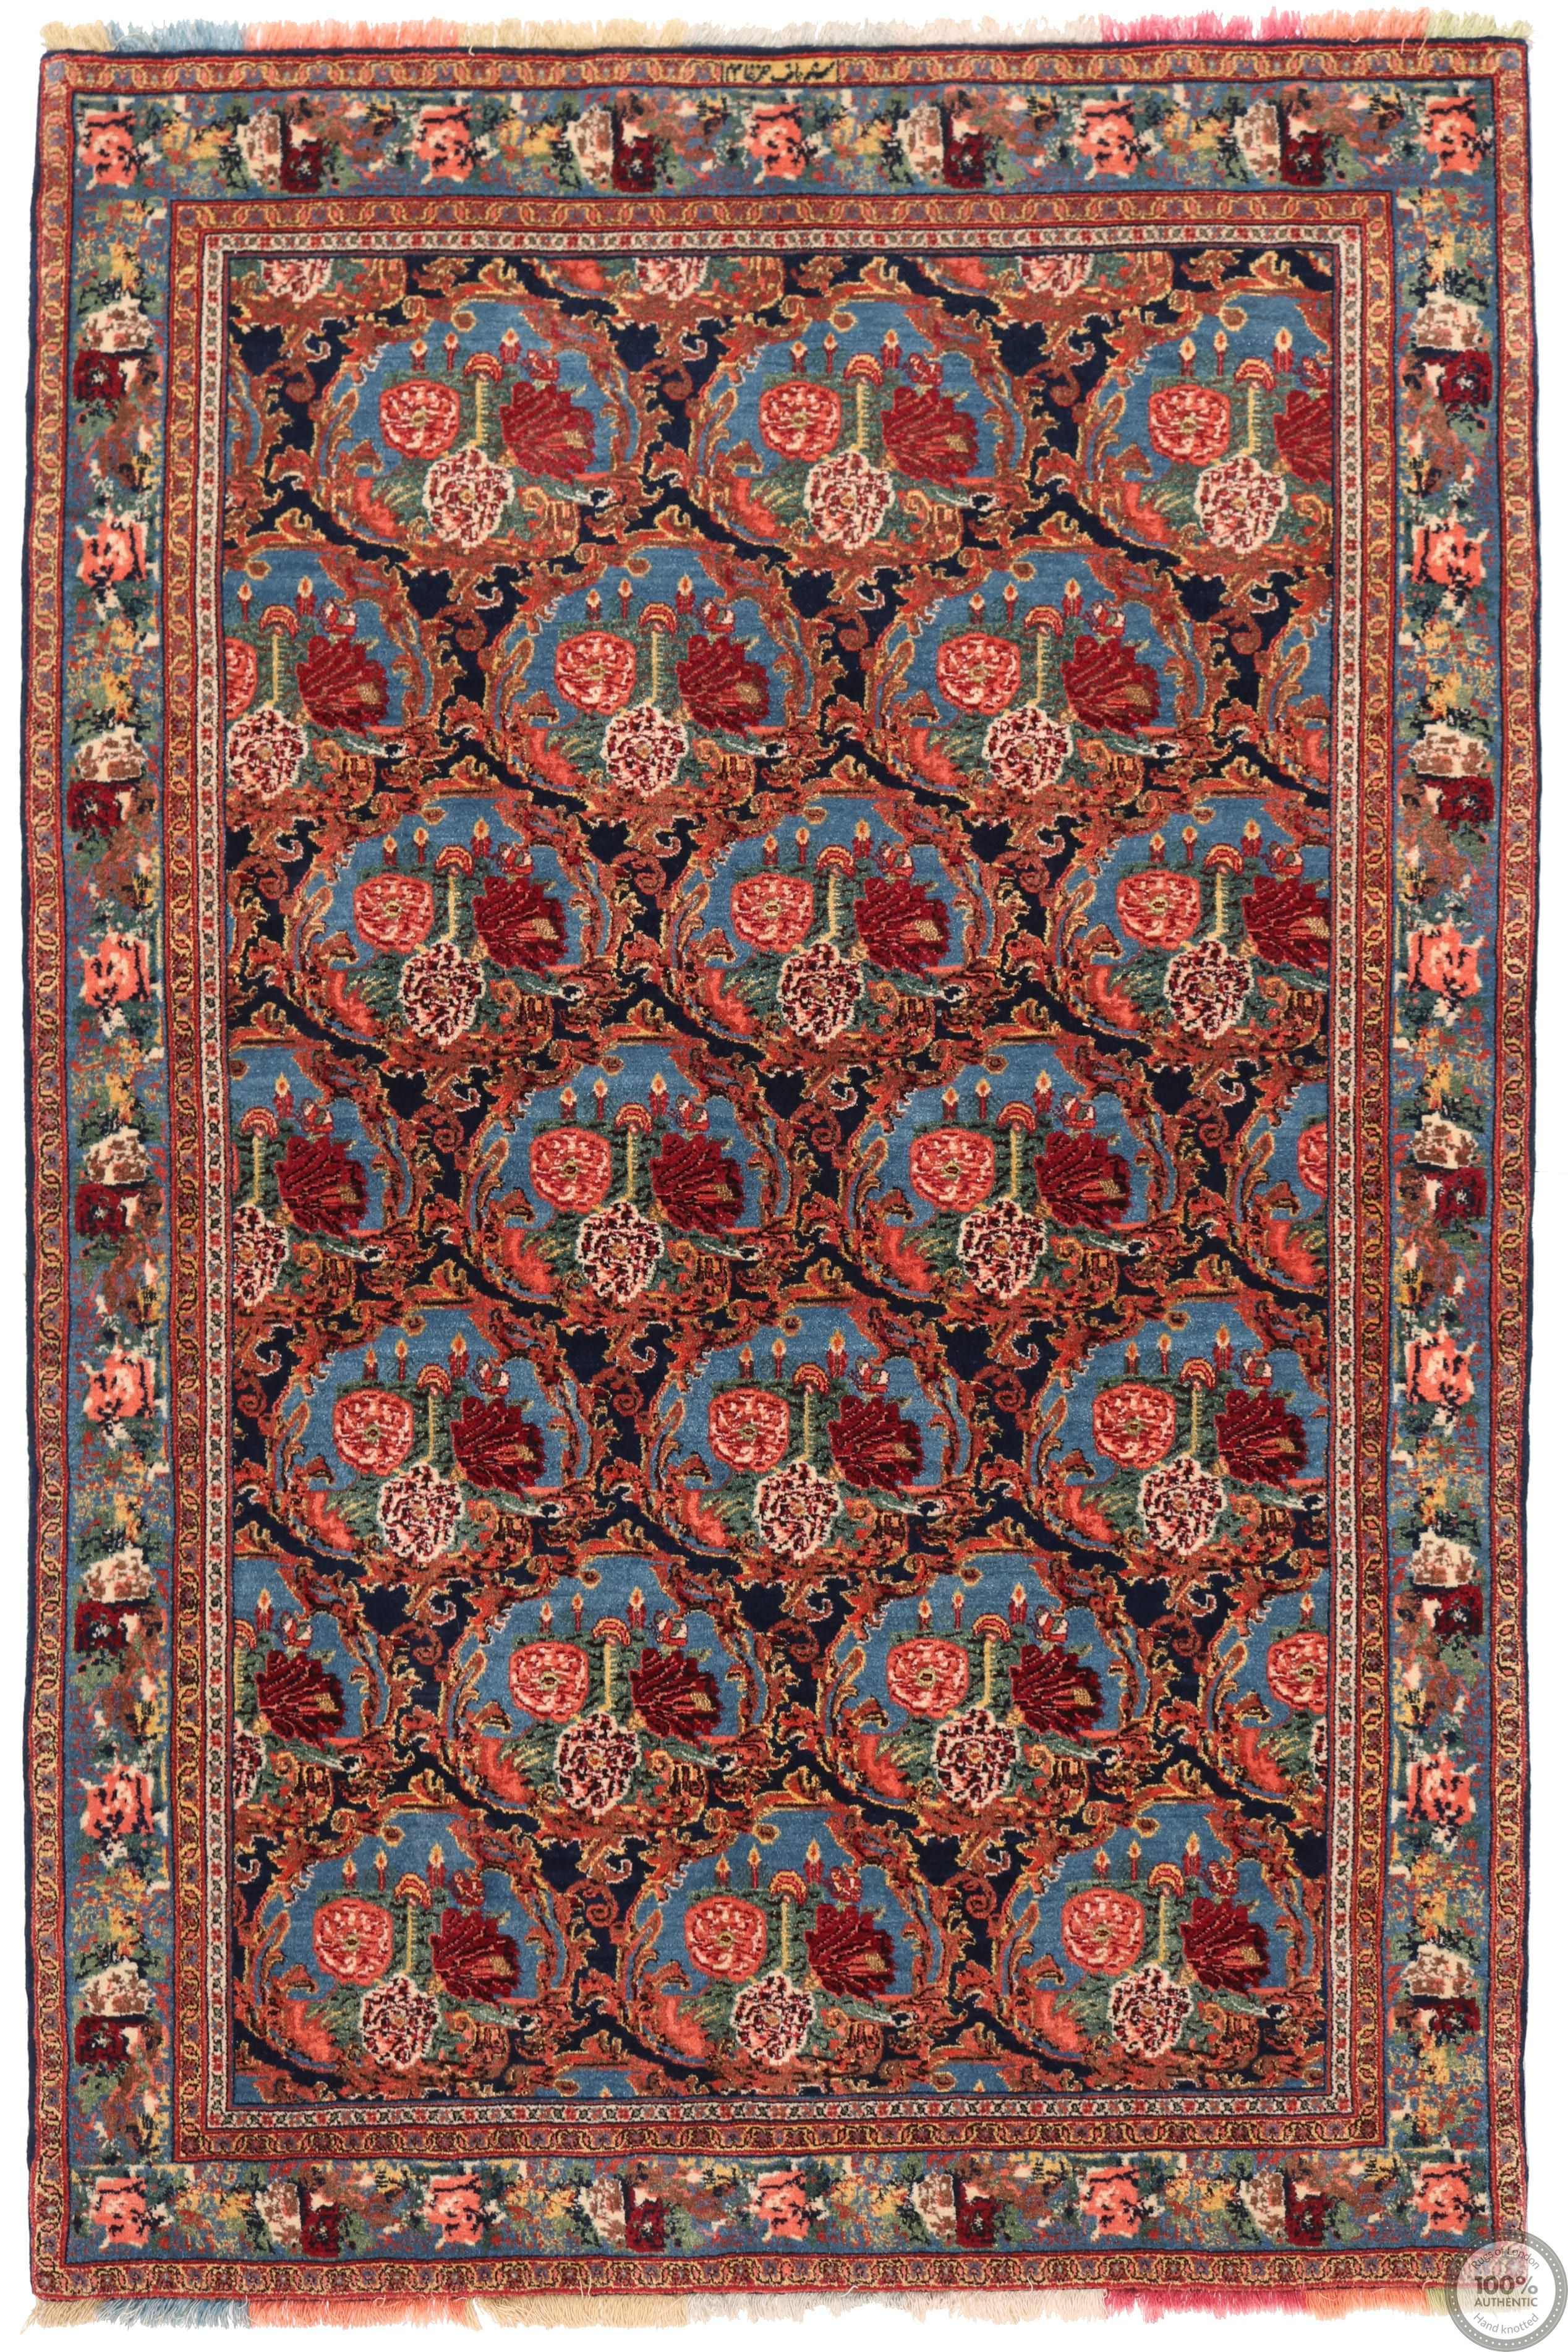 Senneh Fine on Silk Foundation  rug - 7'2 x 4'8